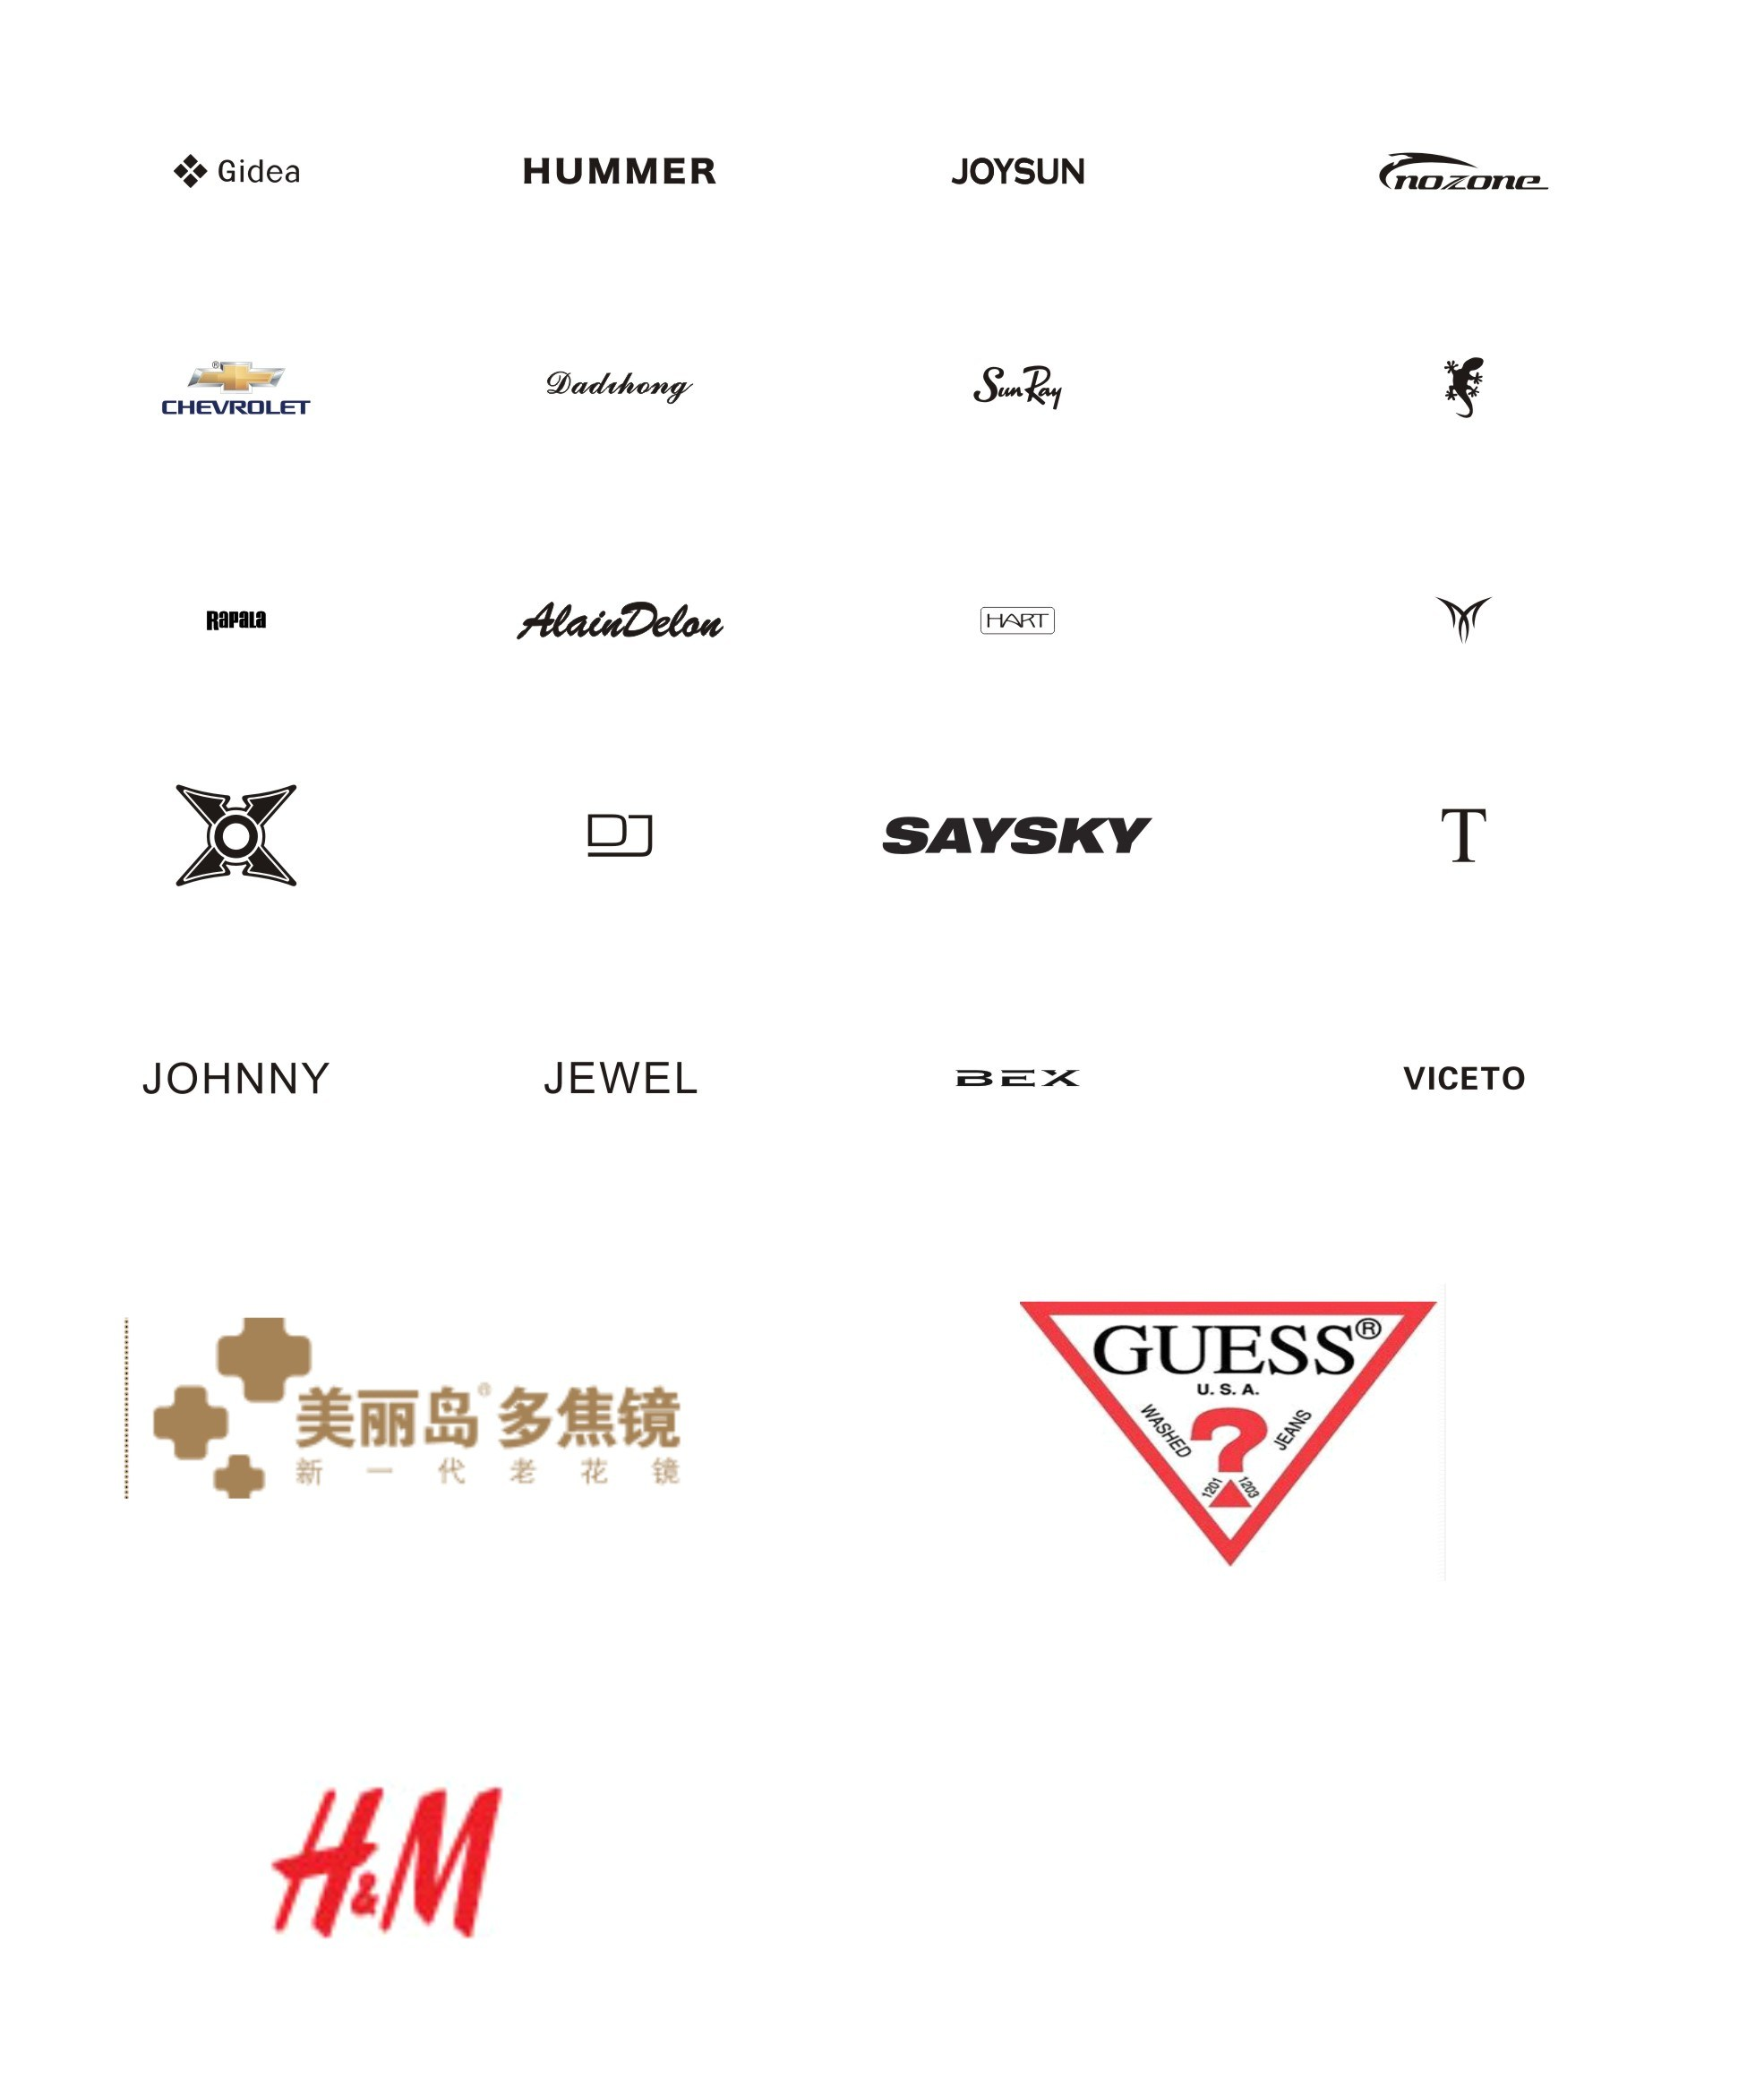 Cooperating Brands